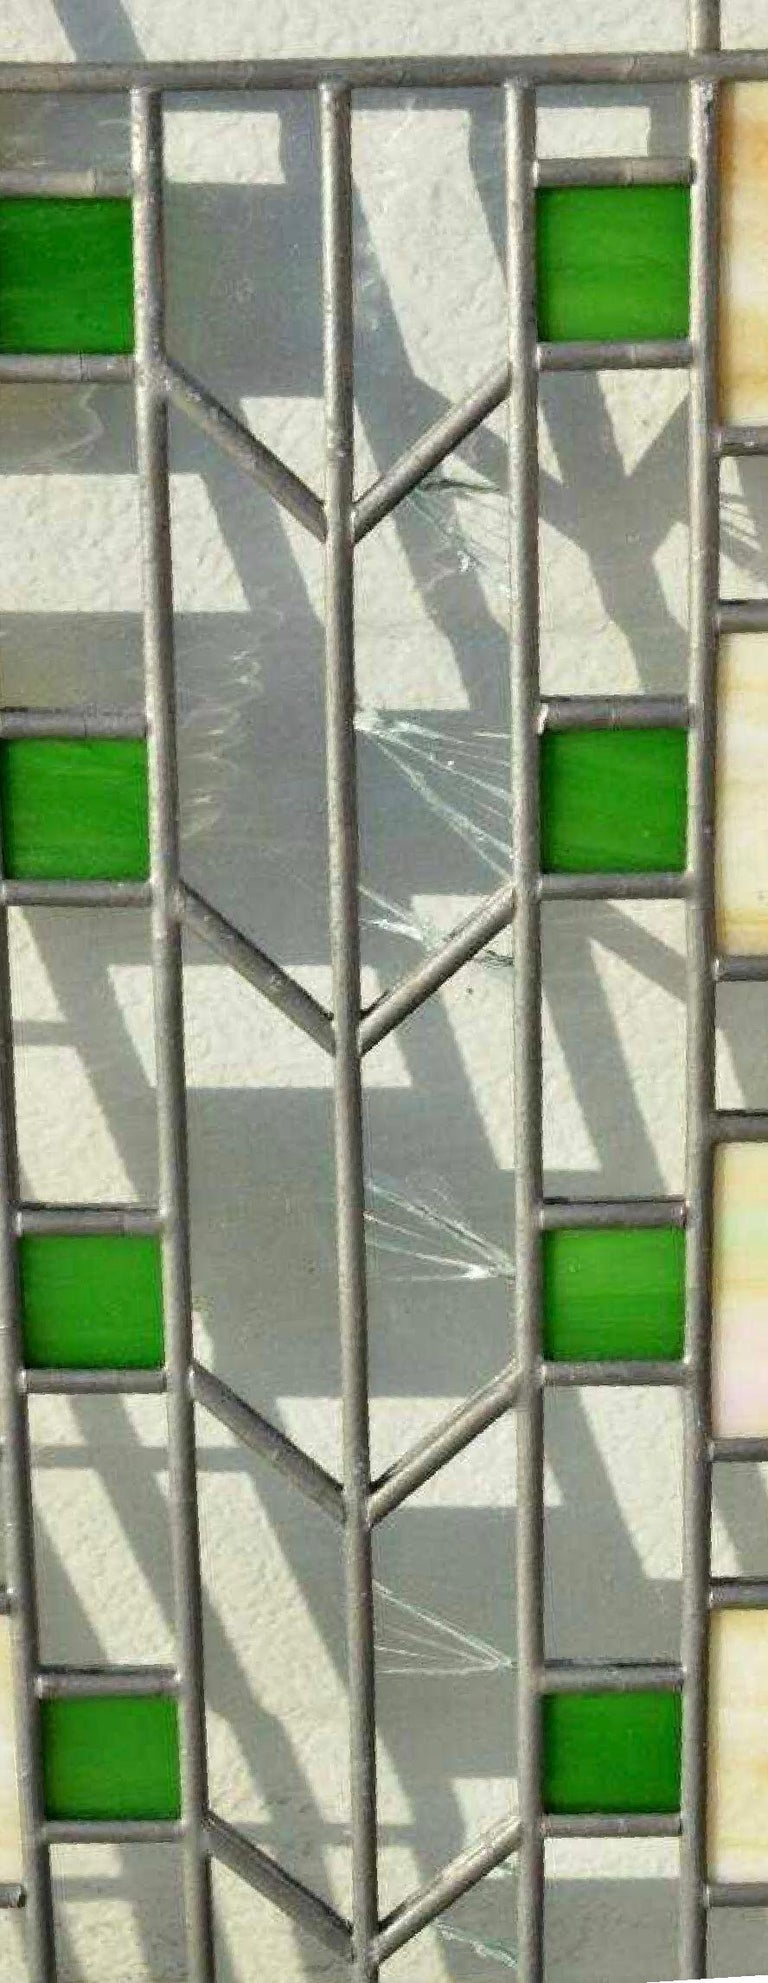 Antique Prairie School Frank Lloyd Wright Leaded Glass Light Screen, Iron Frame In Fair Condition For Sale In Brooklyn, NY